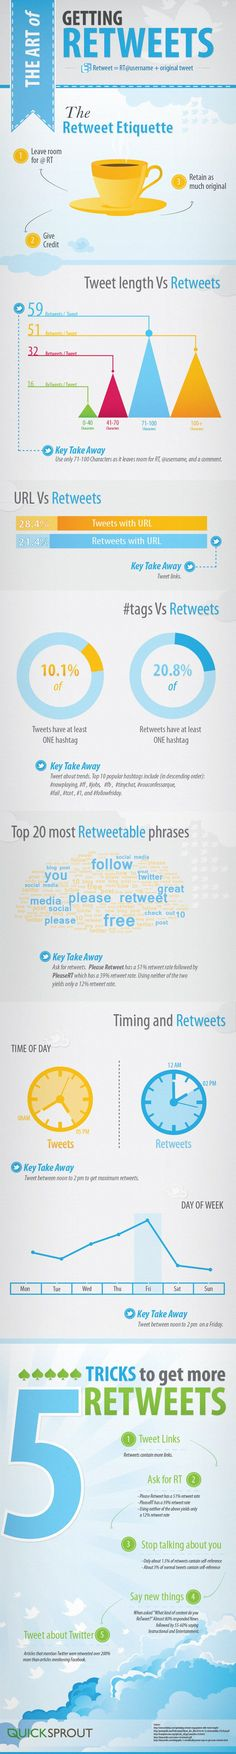 twitter-etiquette-retweet-increase-infographic